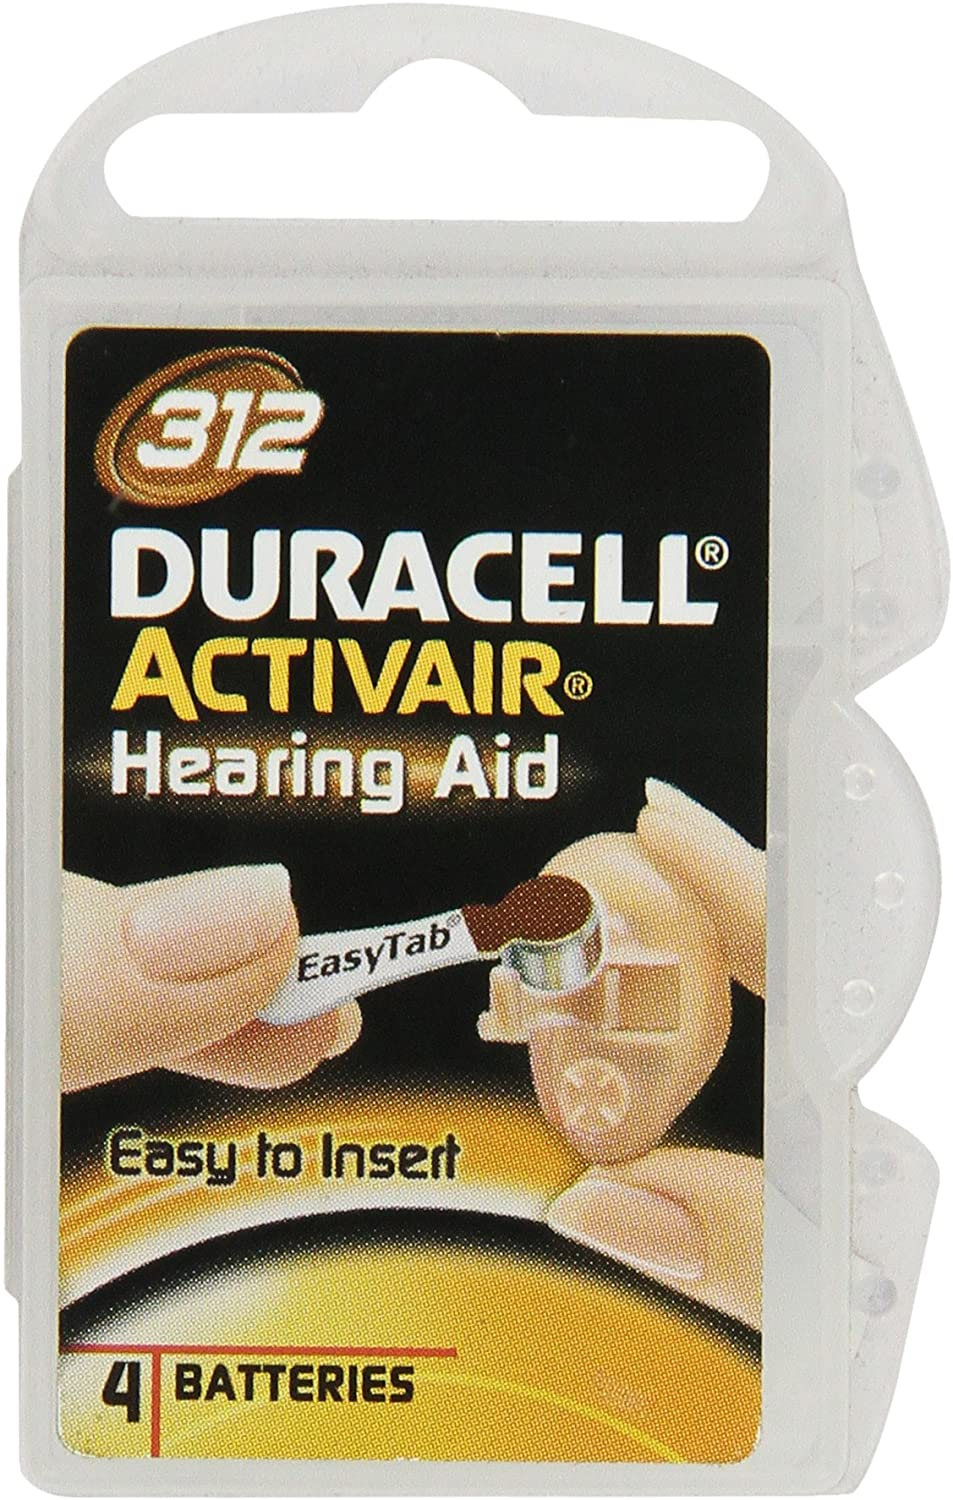 Duracell Activair Easy Tab Size 312 (40 batteries)